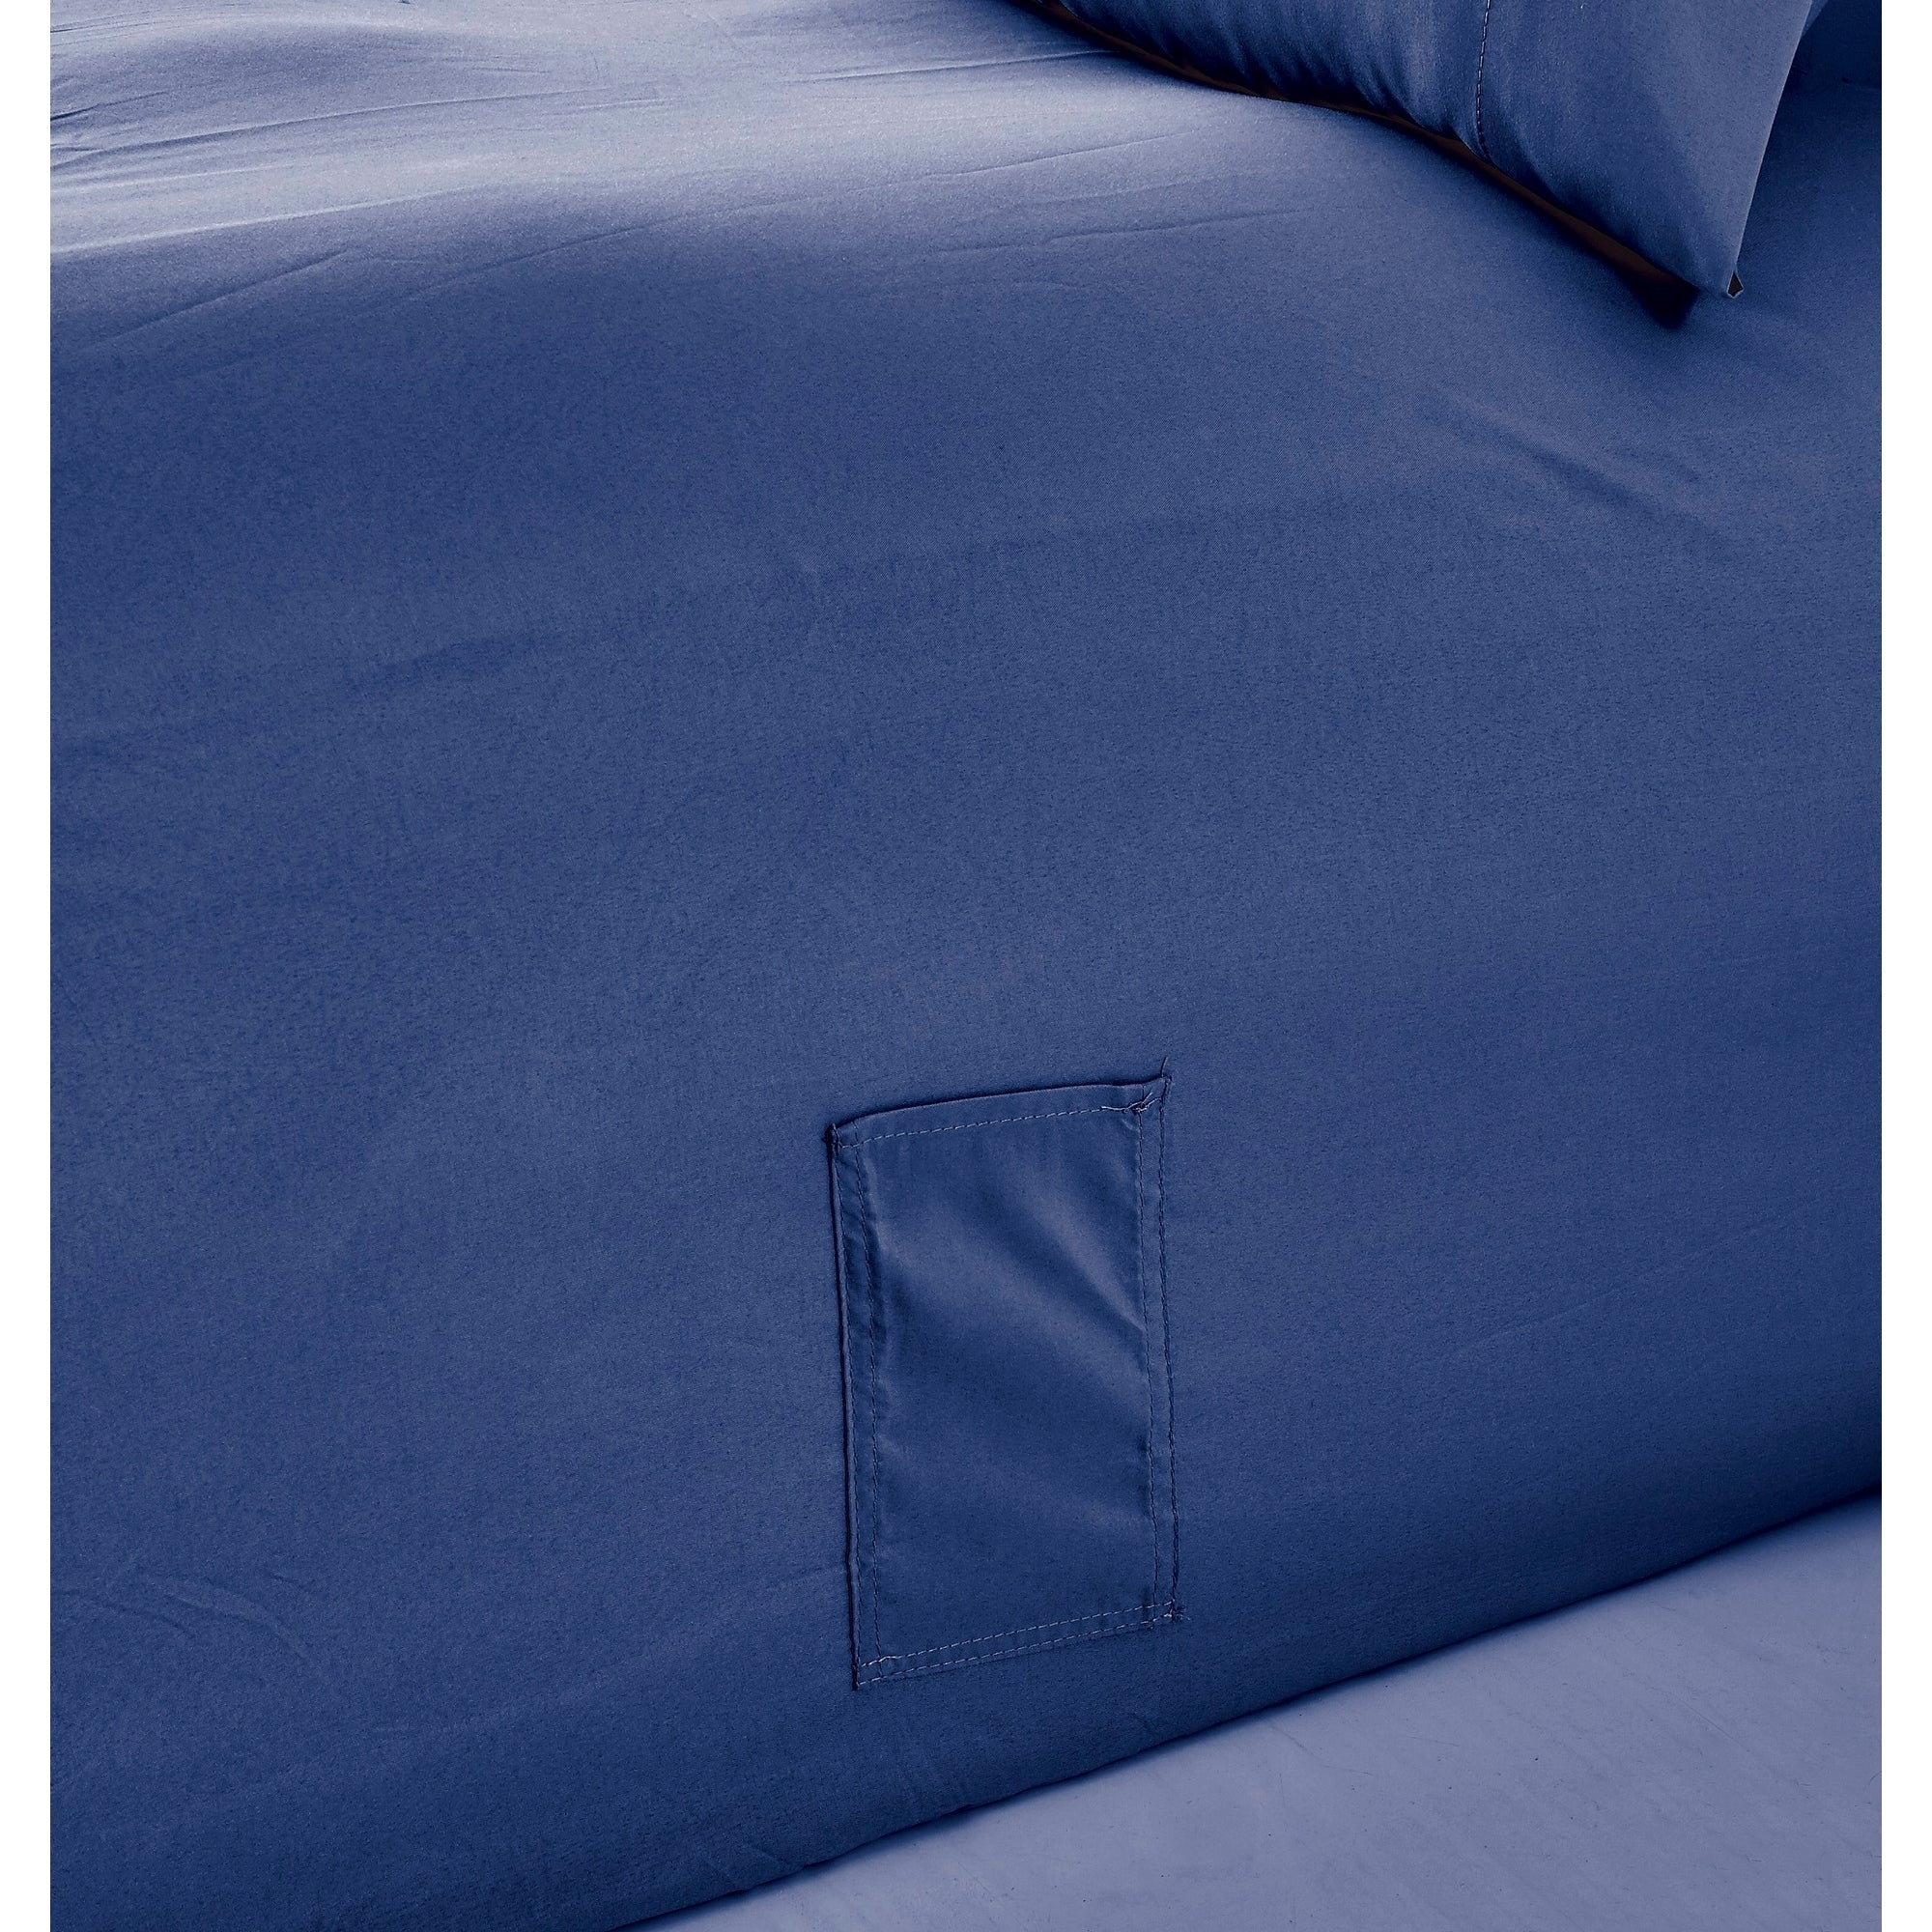 Deluxe Guestroom Survival Kit Air Mattress With Complete Bedding Set Overstock 25639577